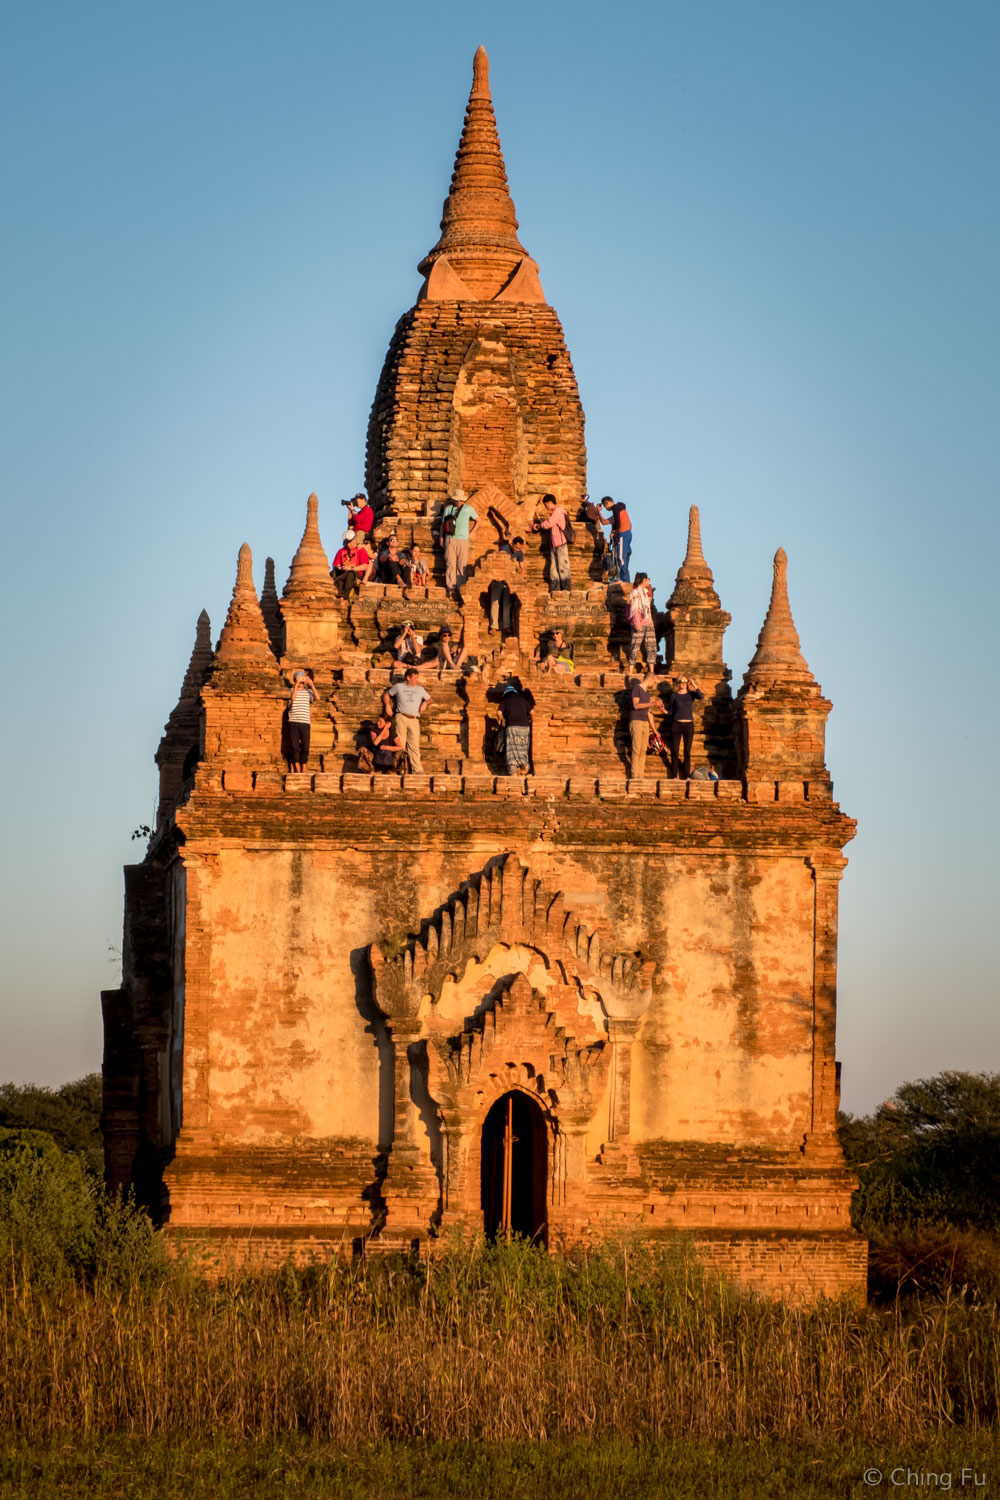 Travelers on temple platforms to watch the sunset.